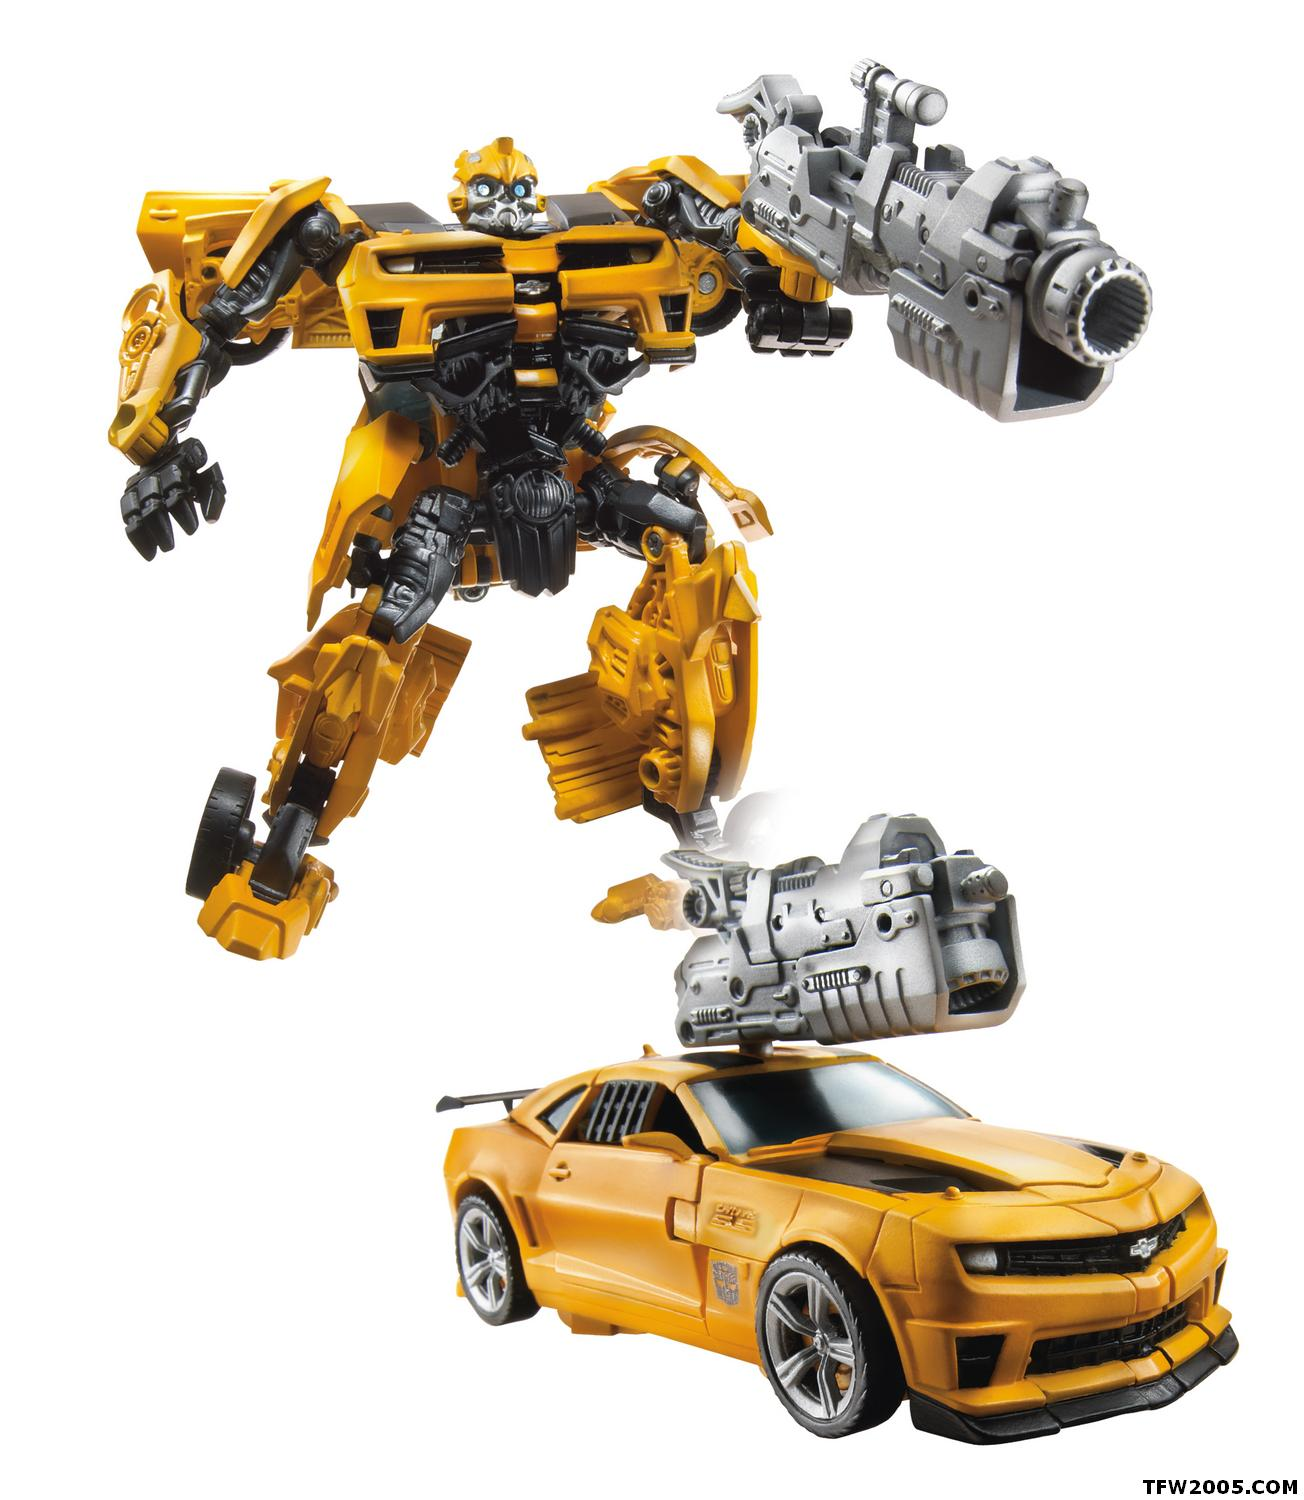 bumblebee deluxe transformers toys tfw2005. Black Bedroom Furniture Sets. Home Design Ideas